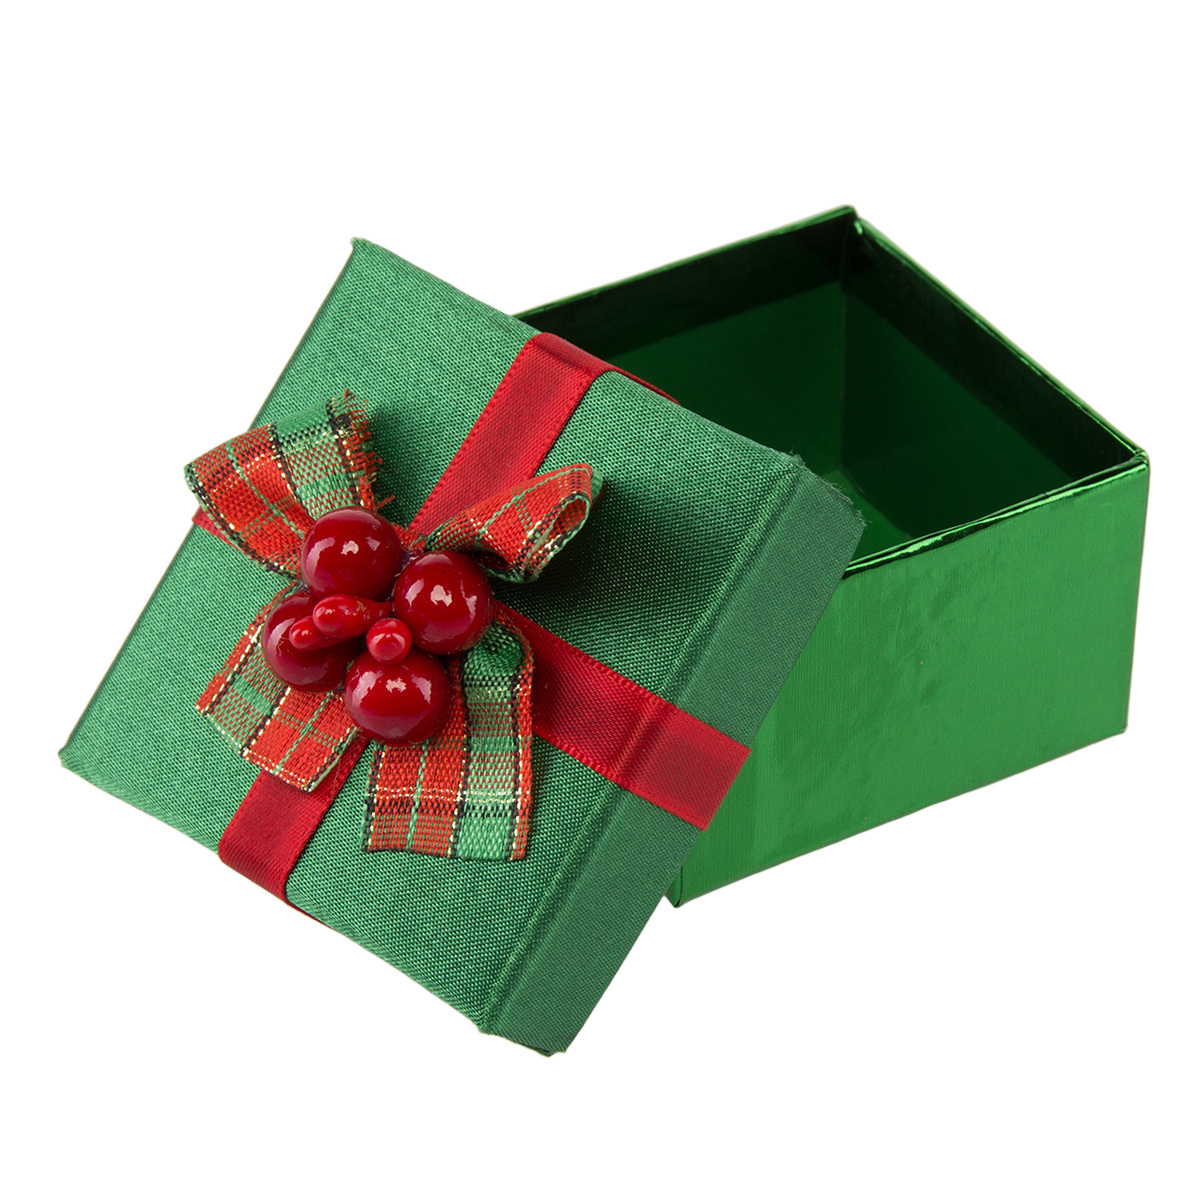 8pk small presents holiday mini gift boxes lids - Decorative Christmas Gift Boxes With Lids